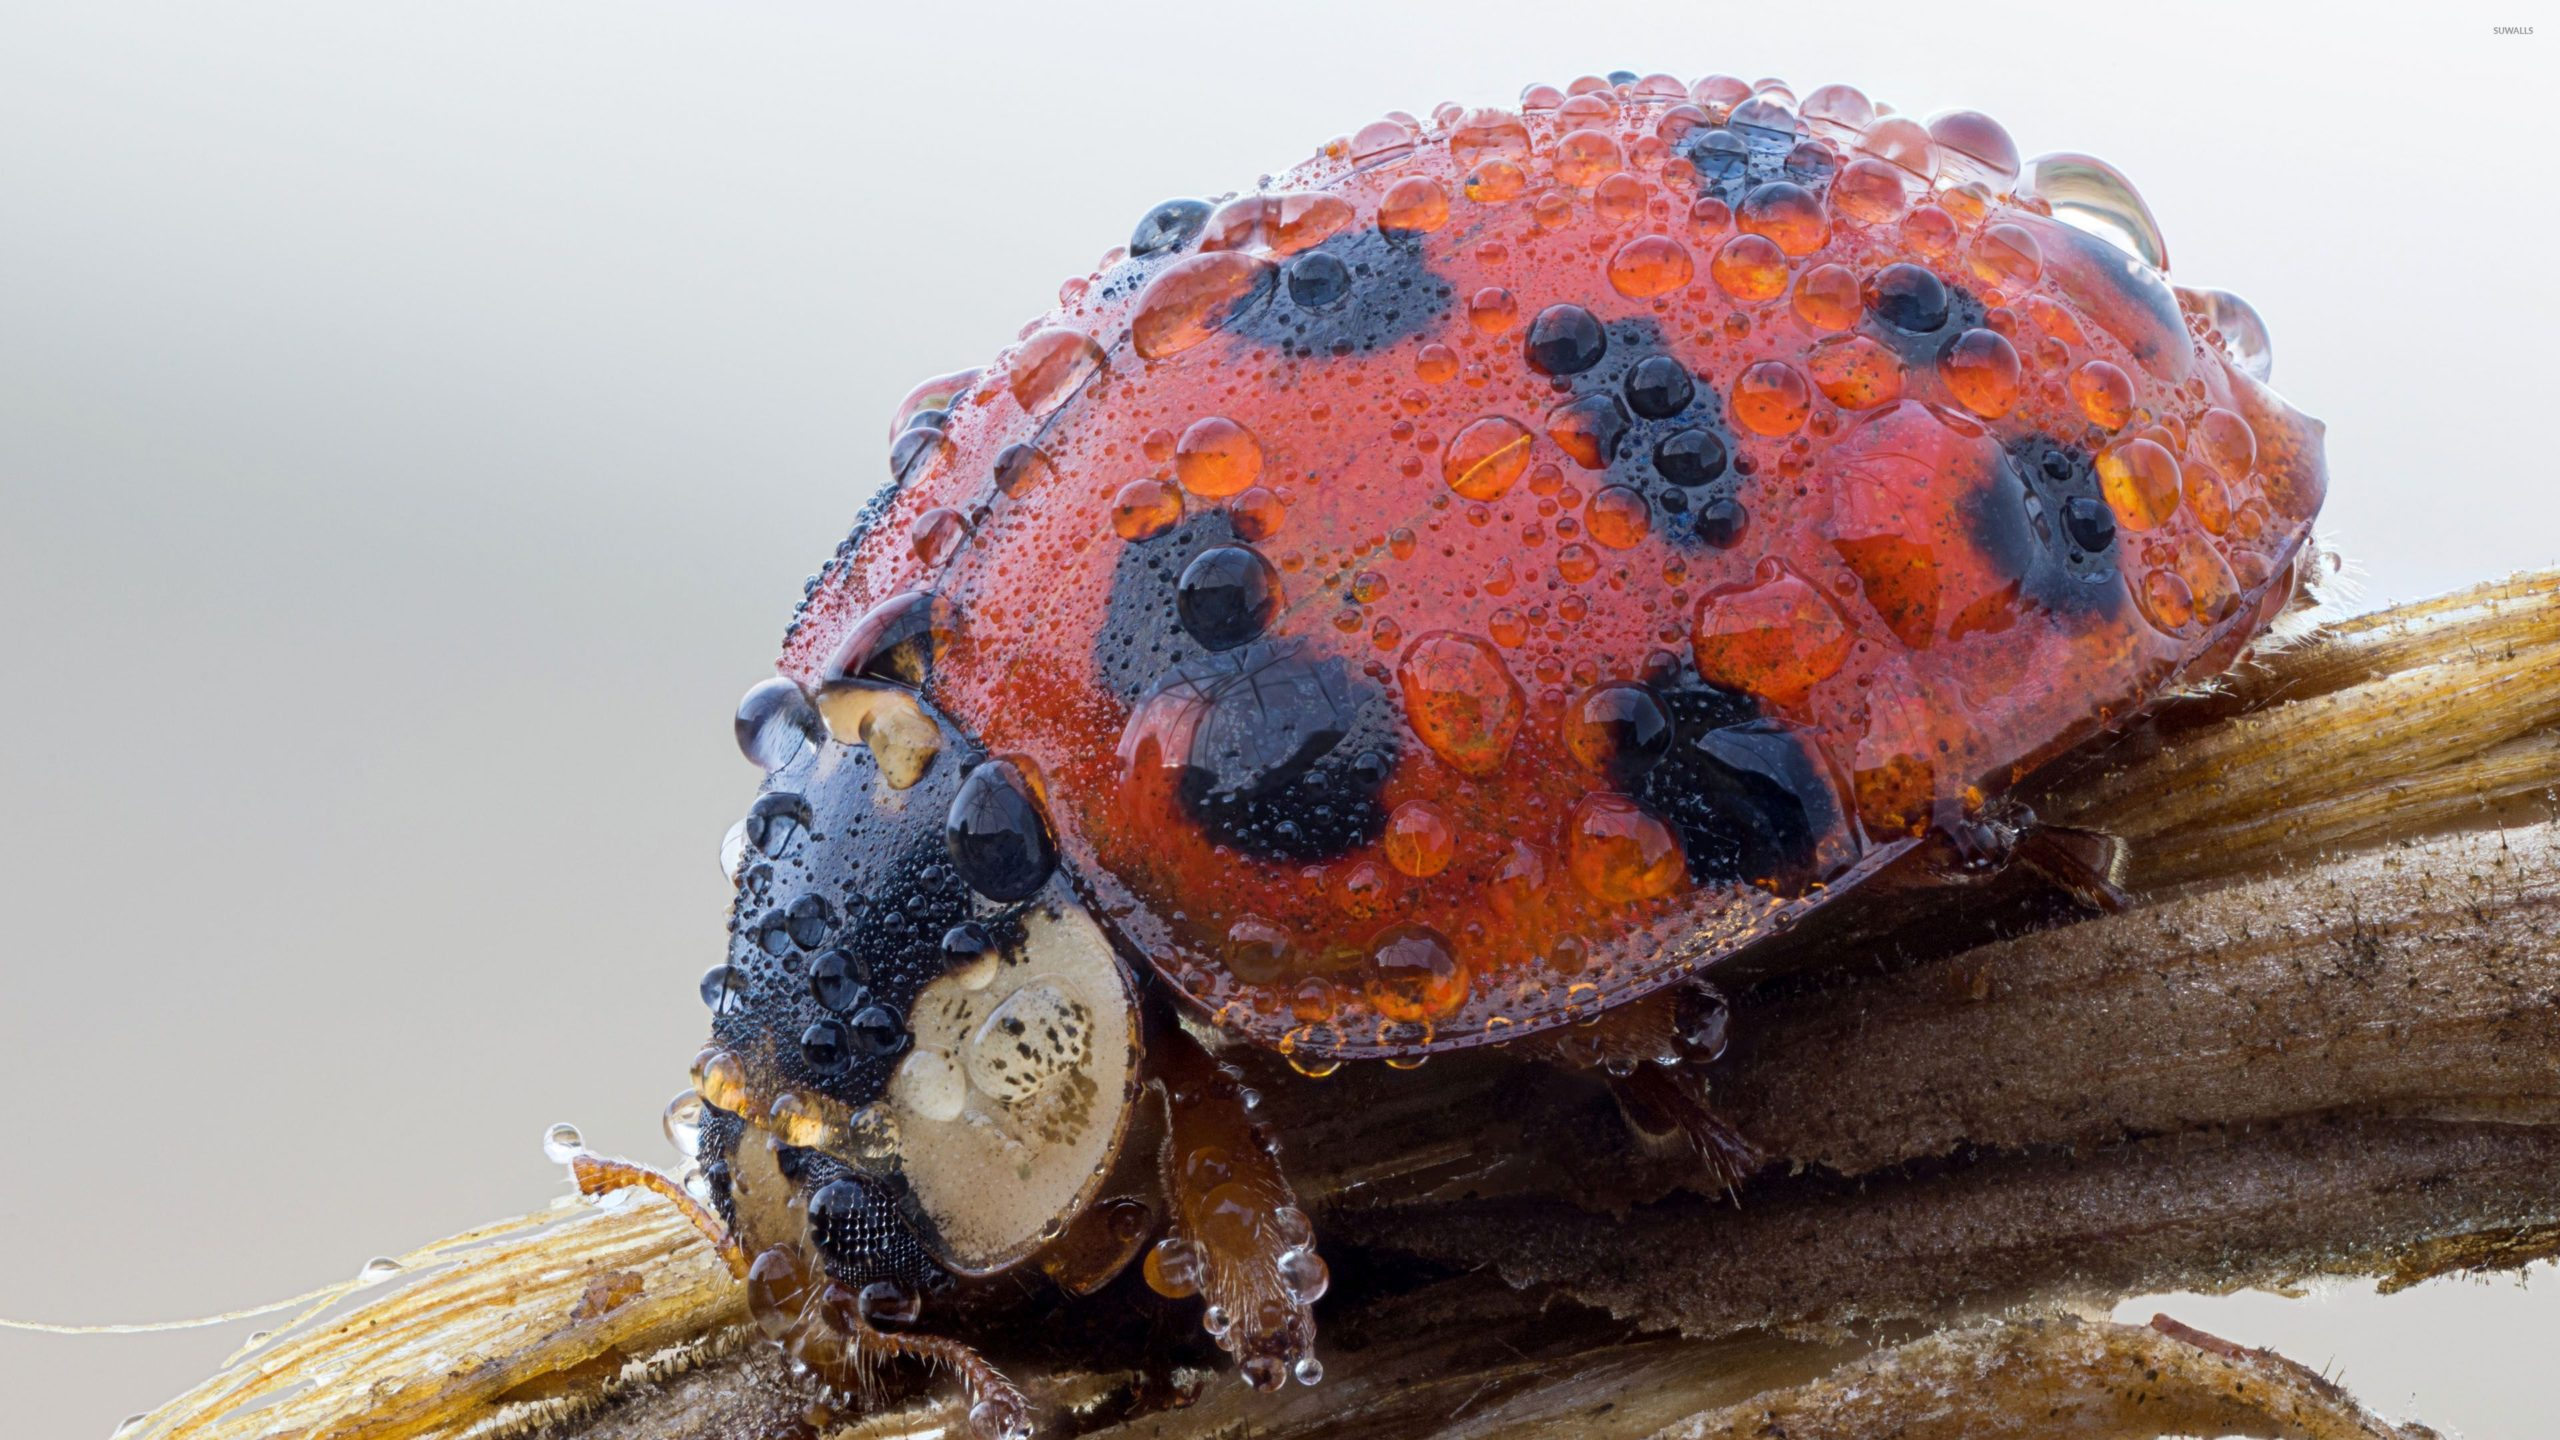 Ladybug With Water Drops 46747 3840×2160 Wallpaper